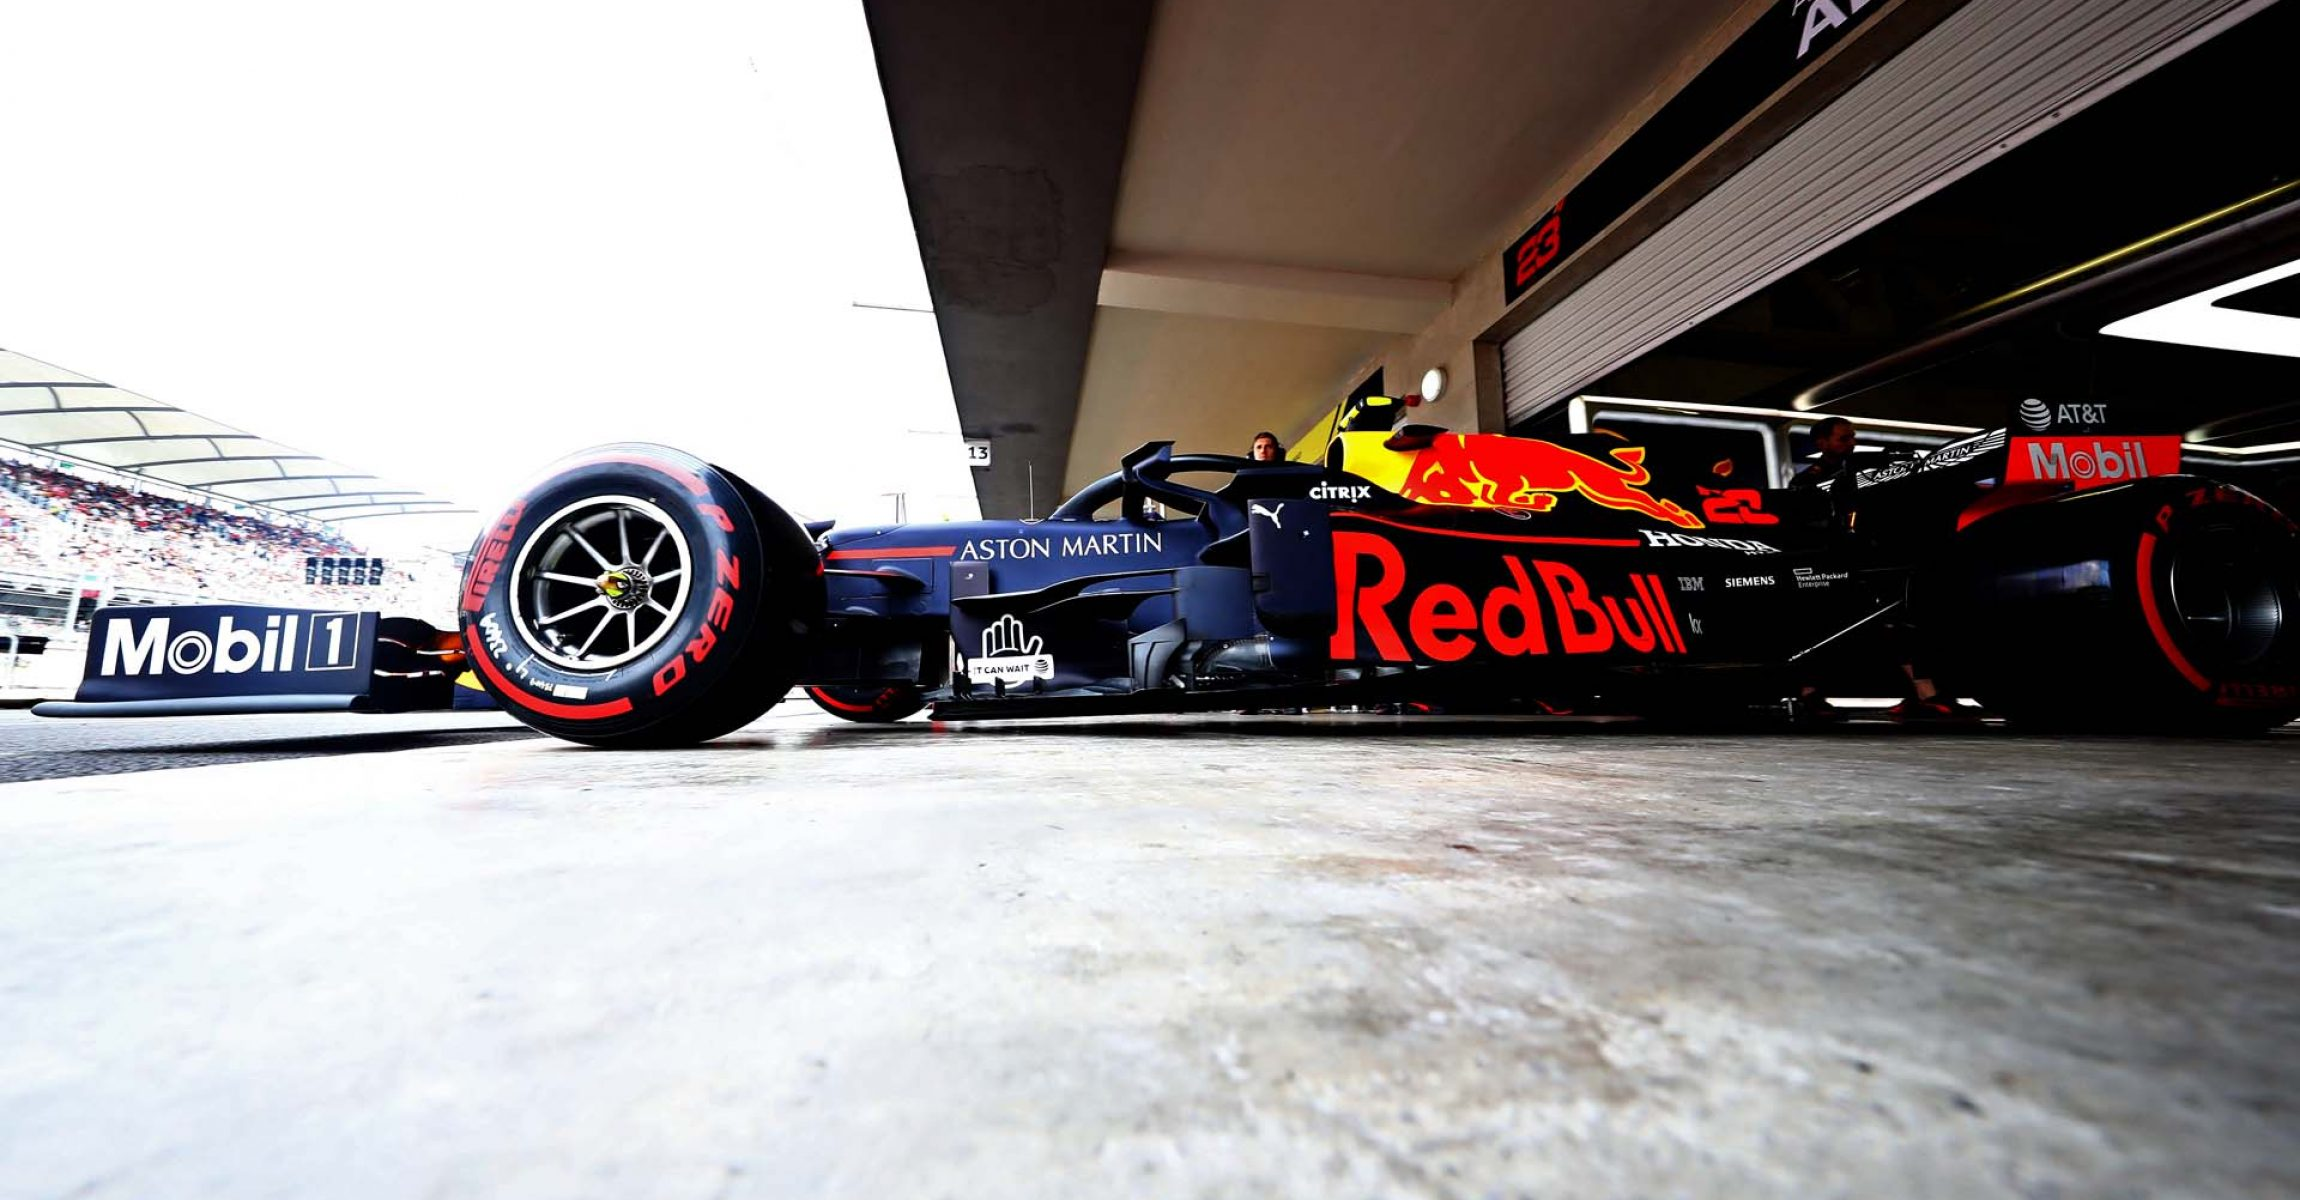 MEXICO CITY, MEXICO - OCTOBER 26: Alexander Albon of Thailand driving the (23) Aston Martin Red Bull Racing RB15 leaves the garage during qualifying for the F1 Grand Prix of Mexico at Autodromo Hermanos Rodriguez on October 26, 2019 in Mexico City, Mexico. (Photo by Mark Thompson/Getty Images) // Getty Images / Red Bull Content Pool  // AP-21ZBFE9V92111 // Usage for editorial use only //